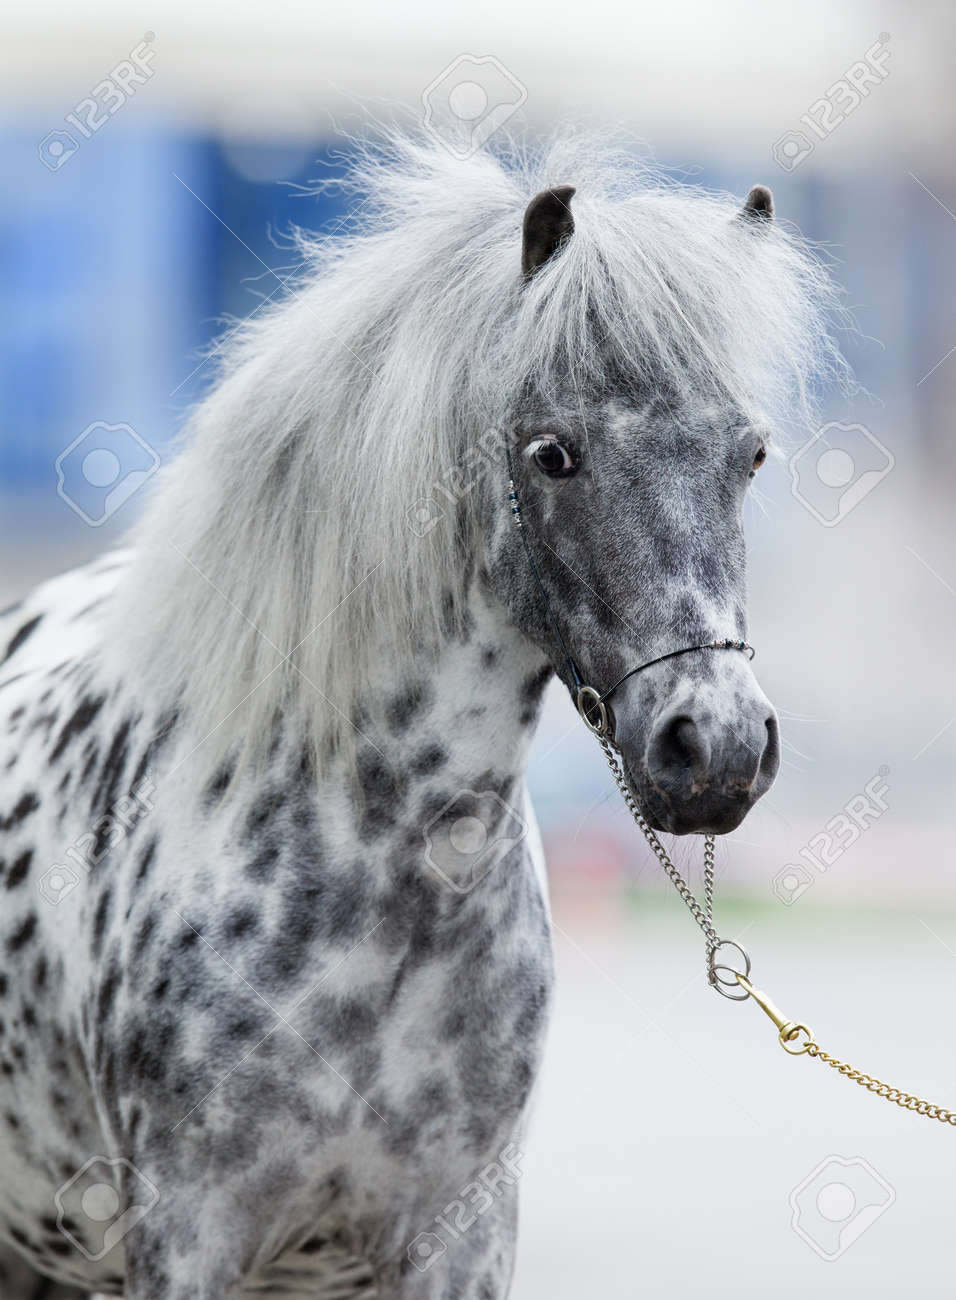 appaloosa horse portrait stock photo picture and royalty free image